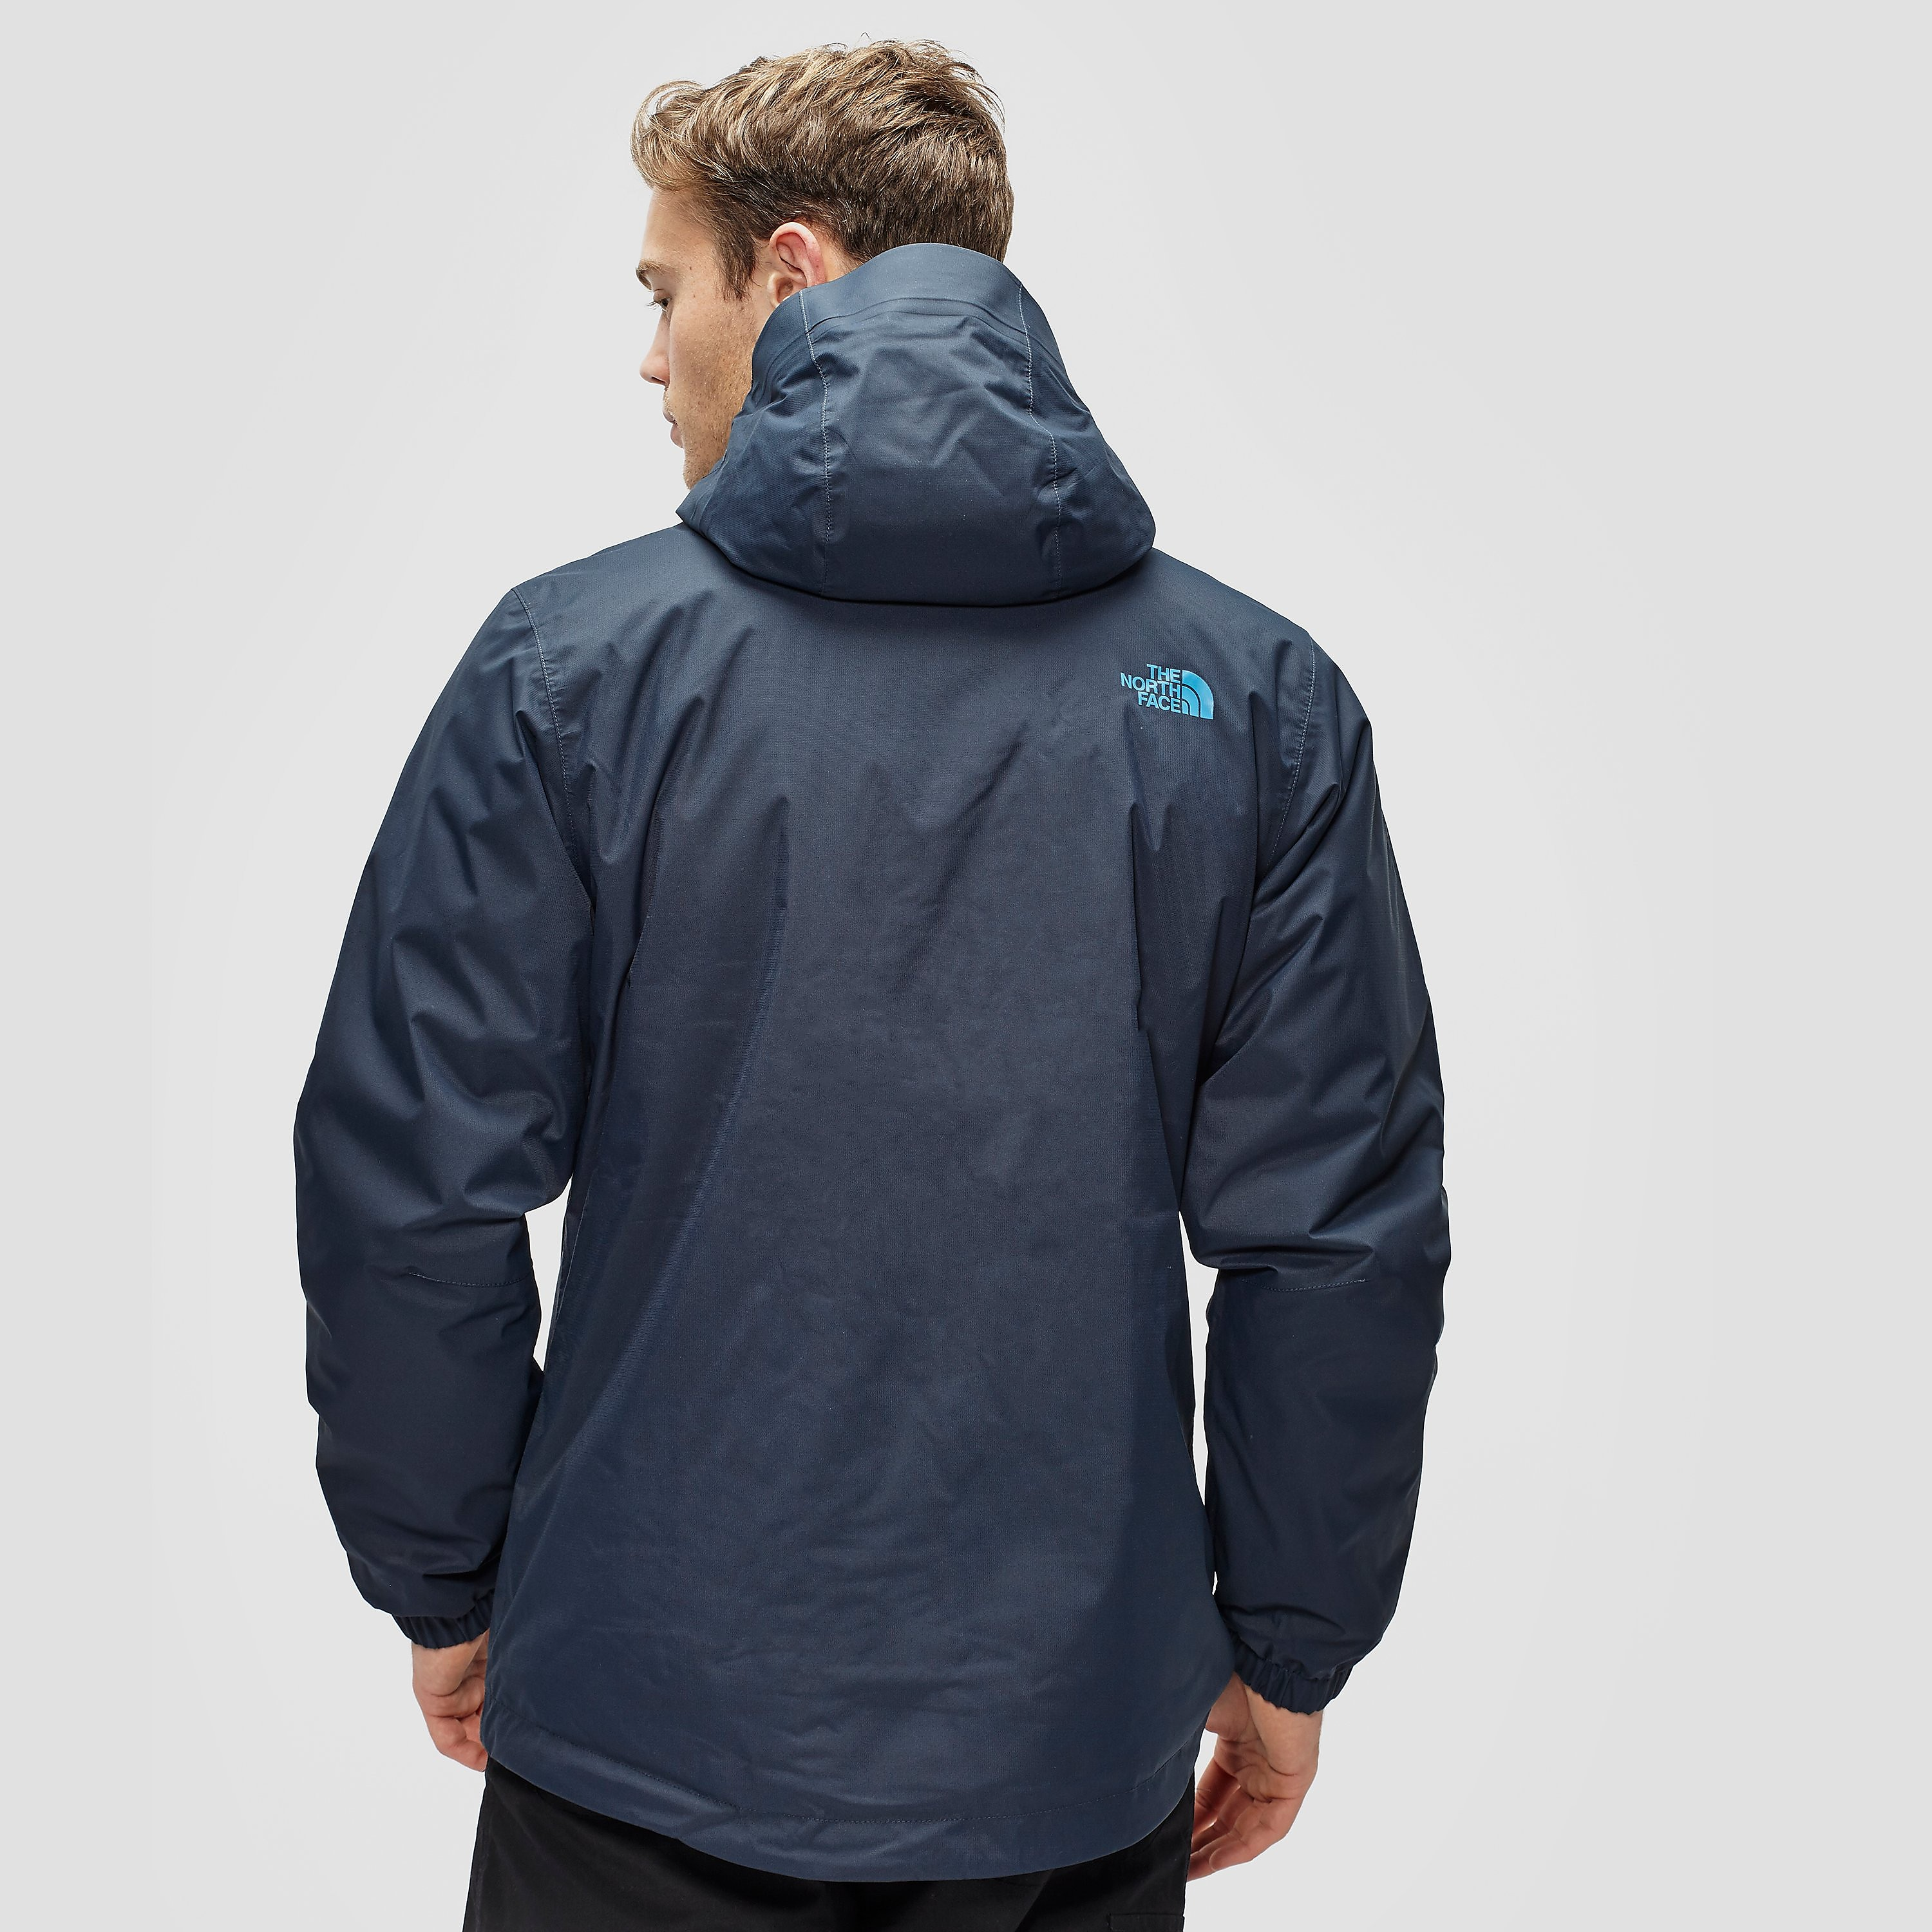 The North Face Quest Insulated Men's Jacket